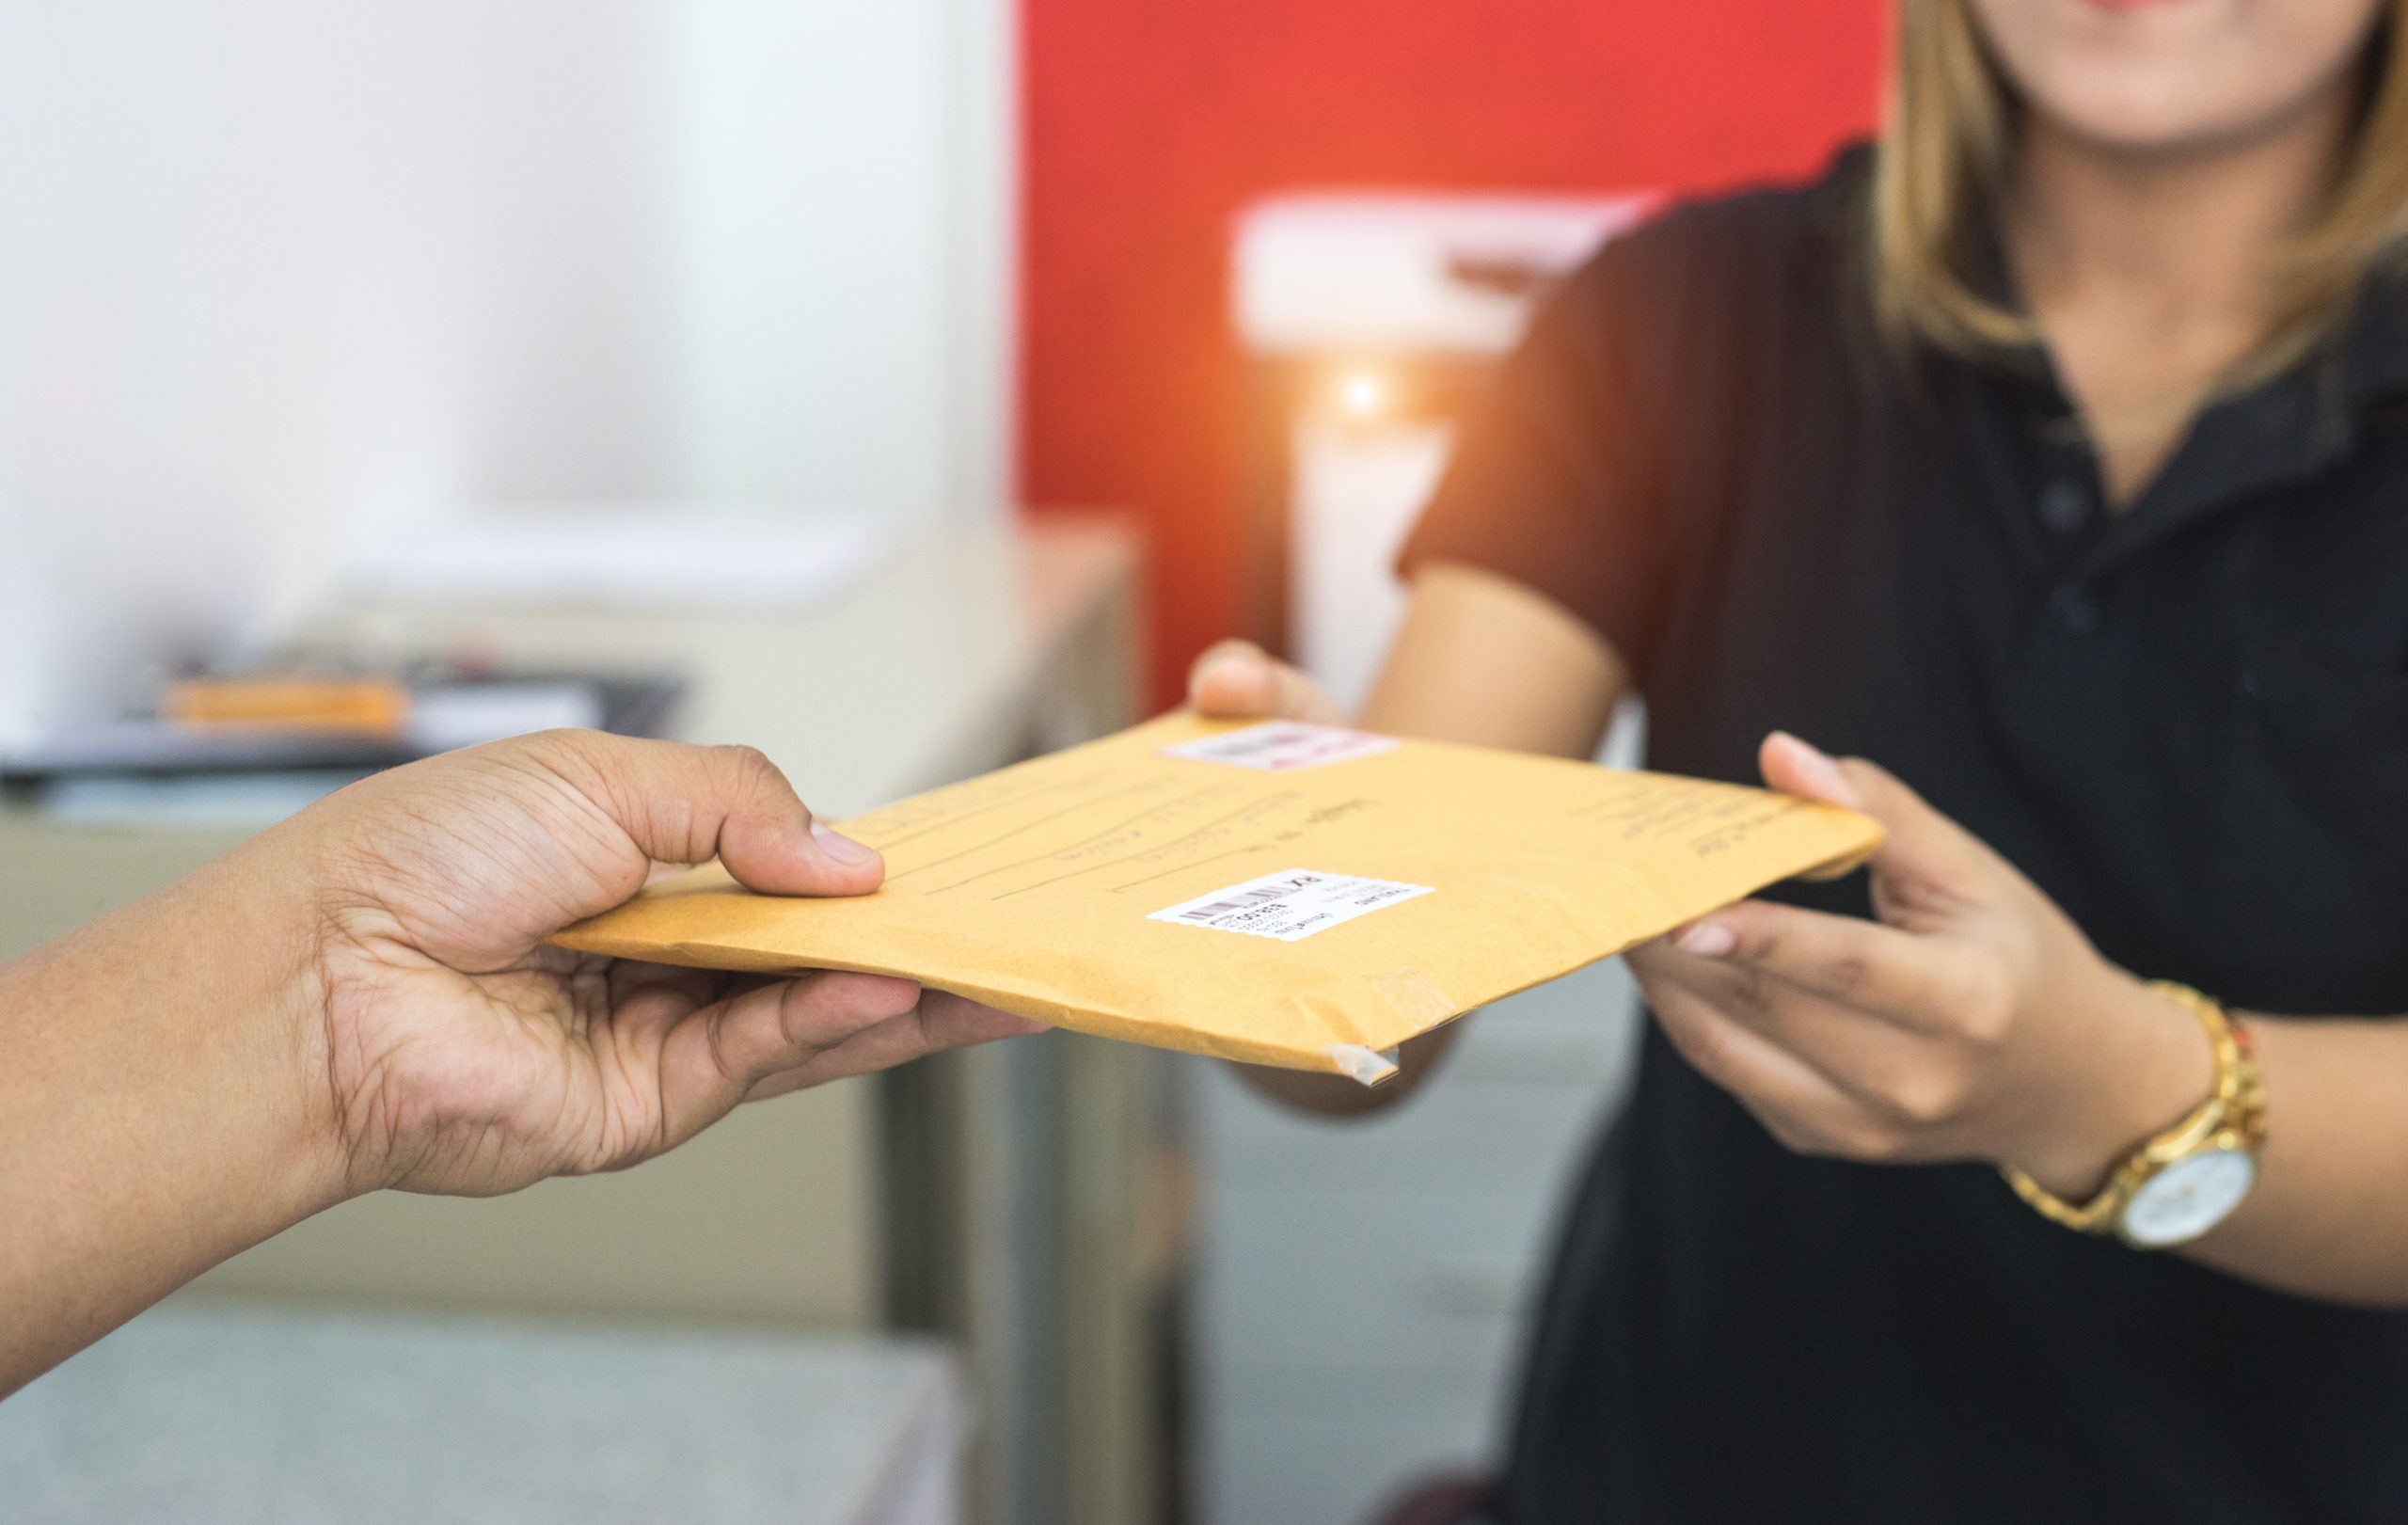 Man Handing Mail | Traditional Mail | Snail Mail Marketing